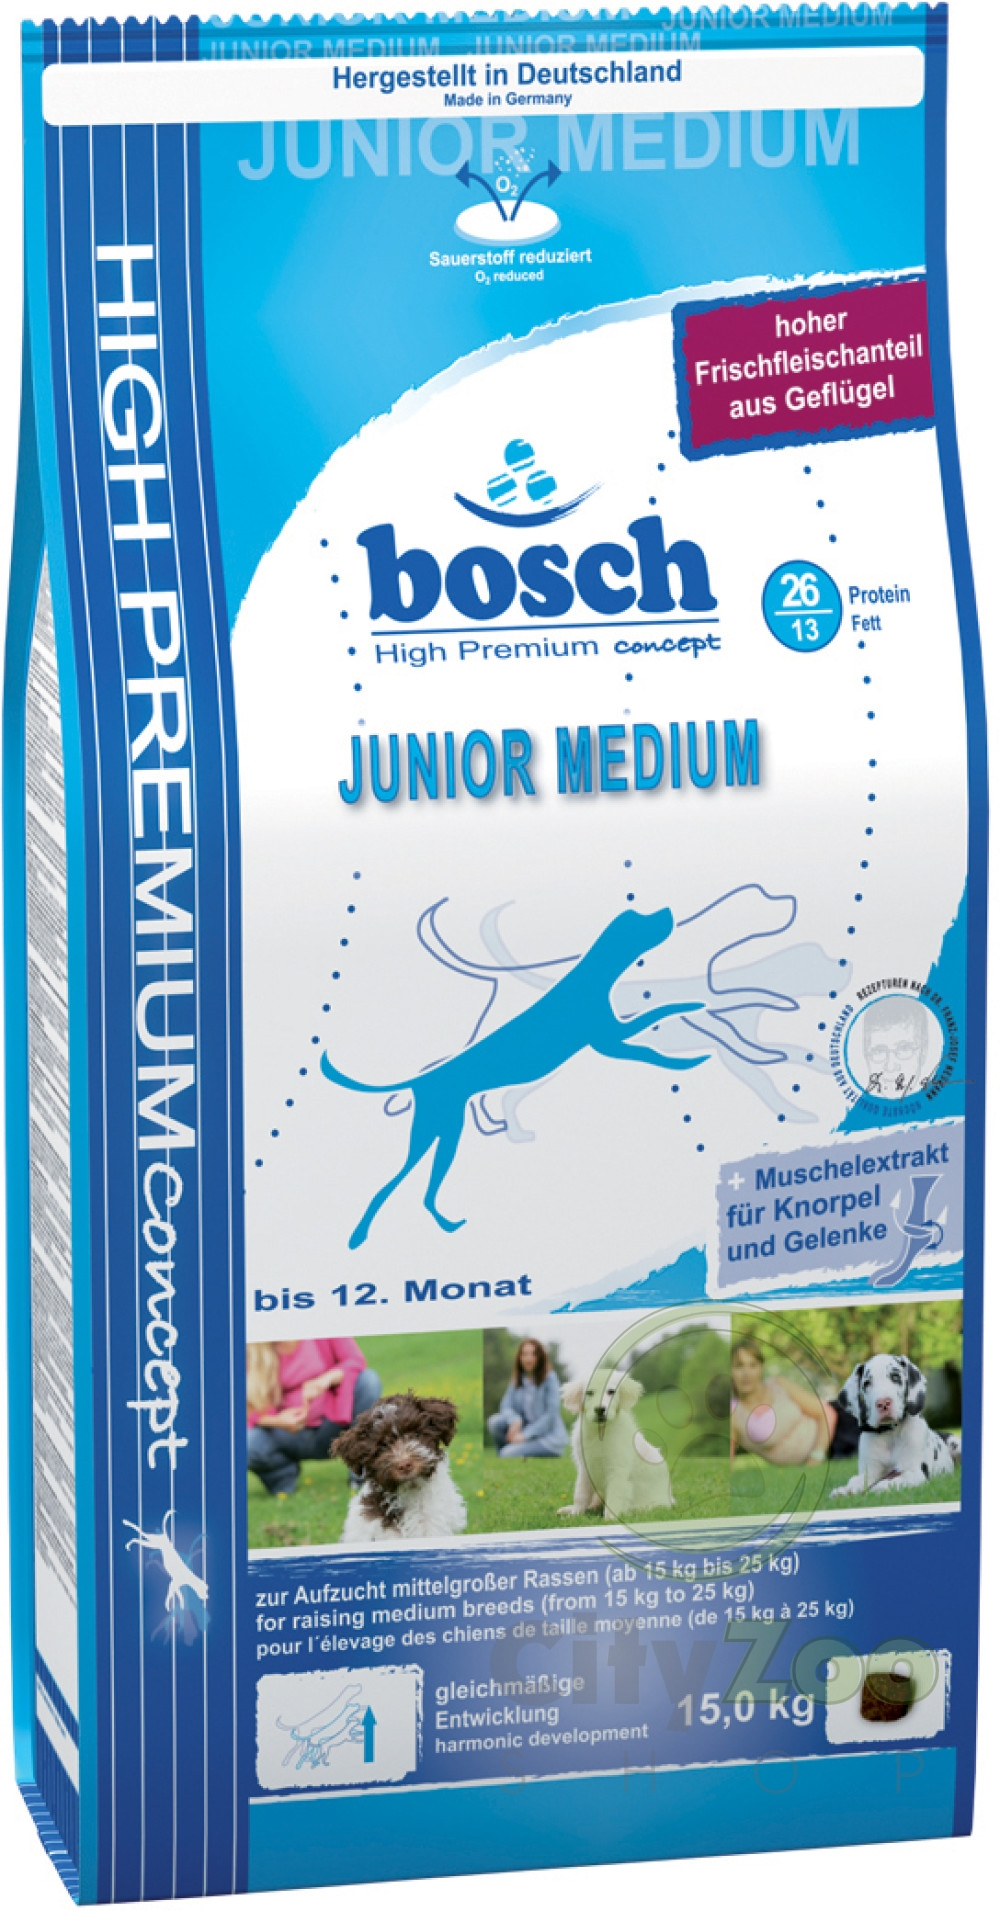 zoo/Bosch_Junior_Medium